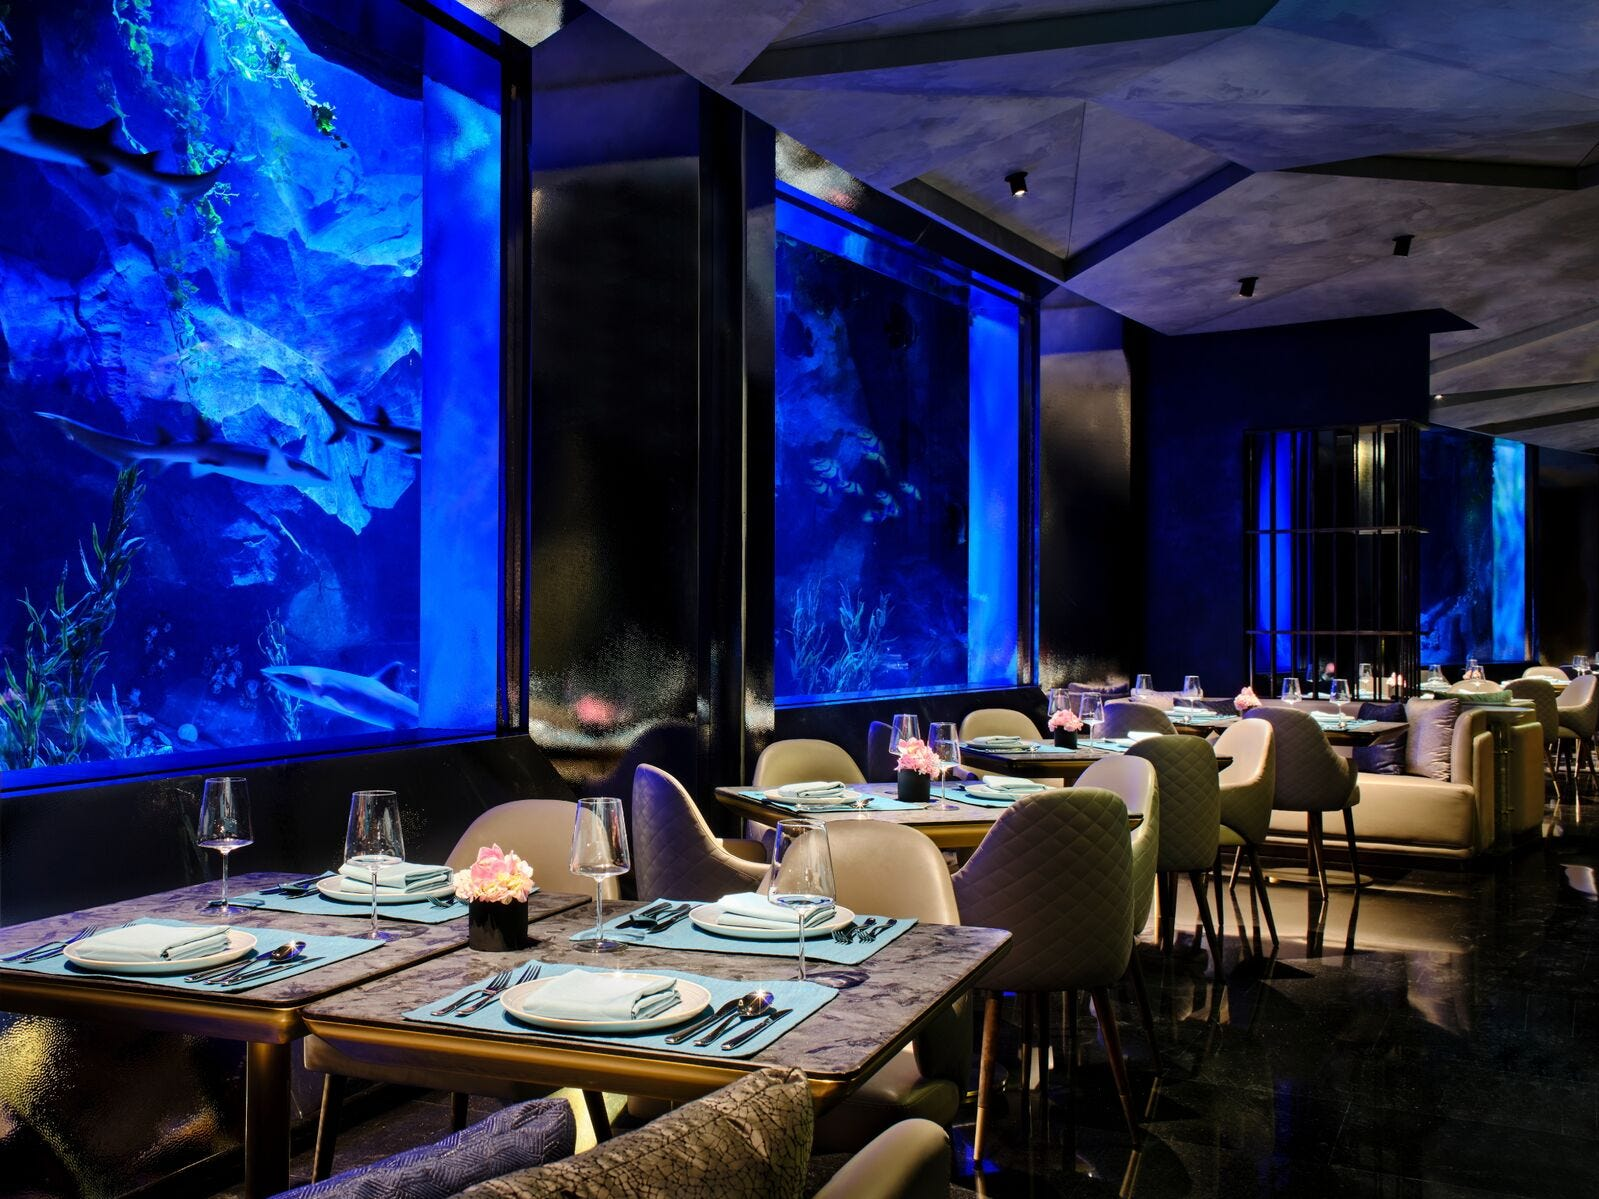 If you can't book one of the six underwater suites, dining here is the next best thing.